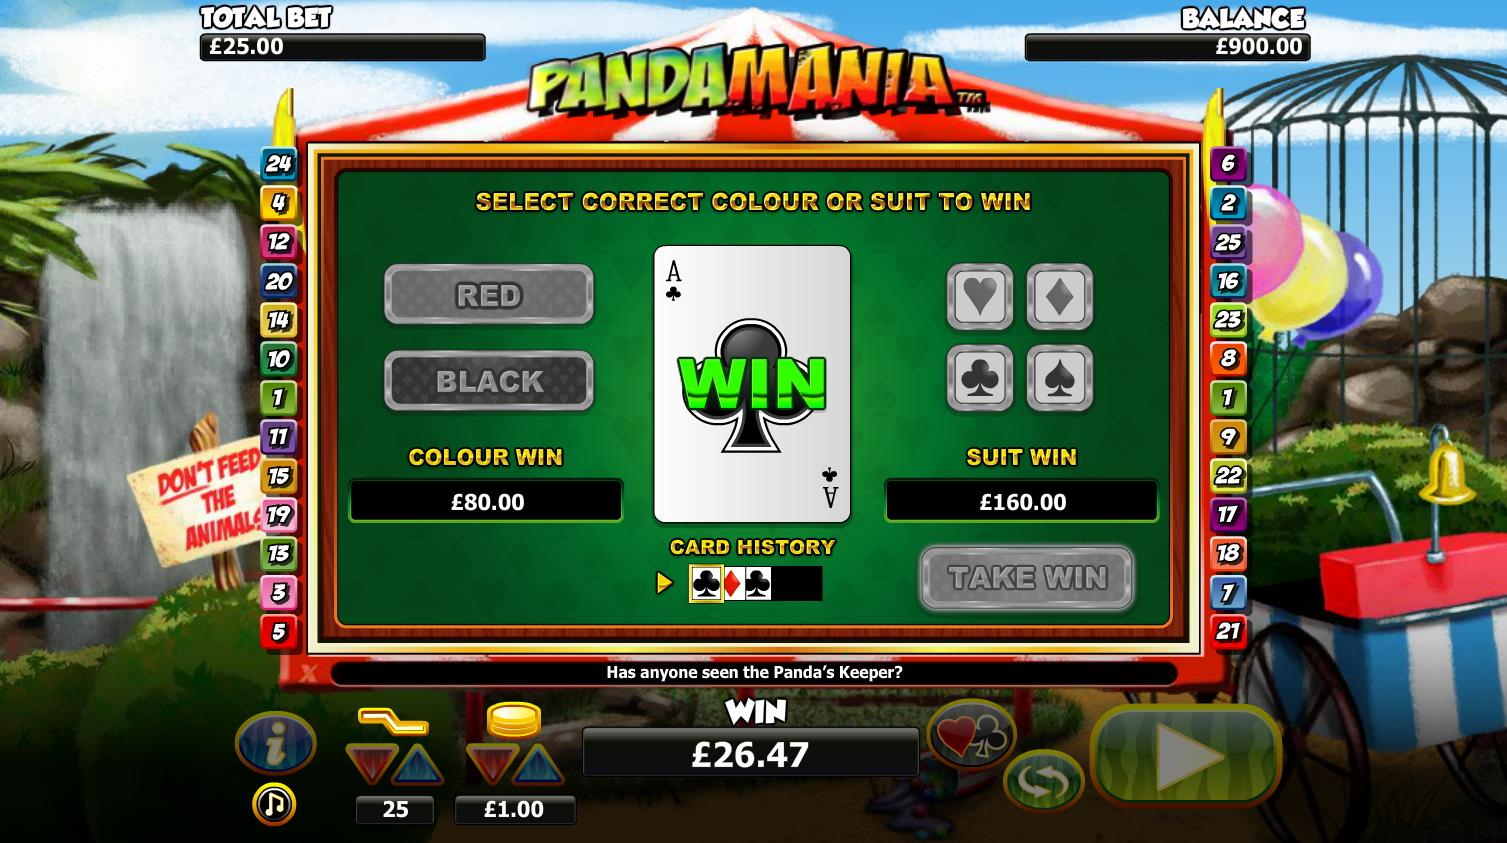 Pandamania Gamble Win